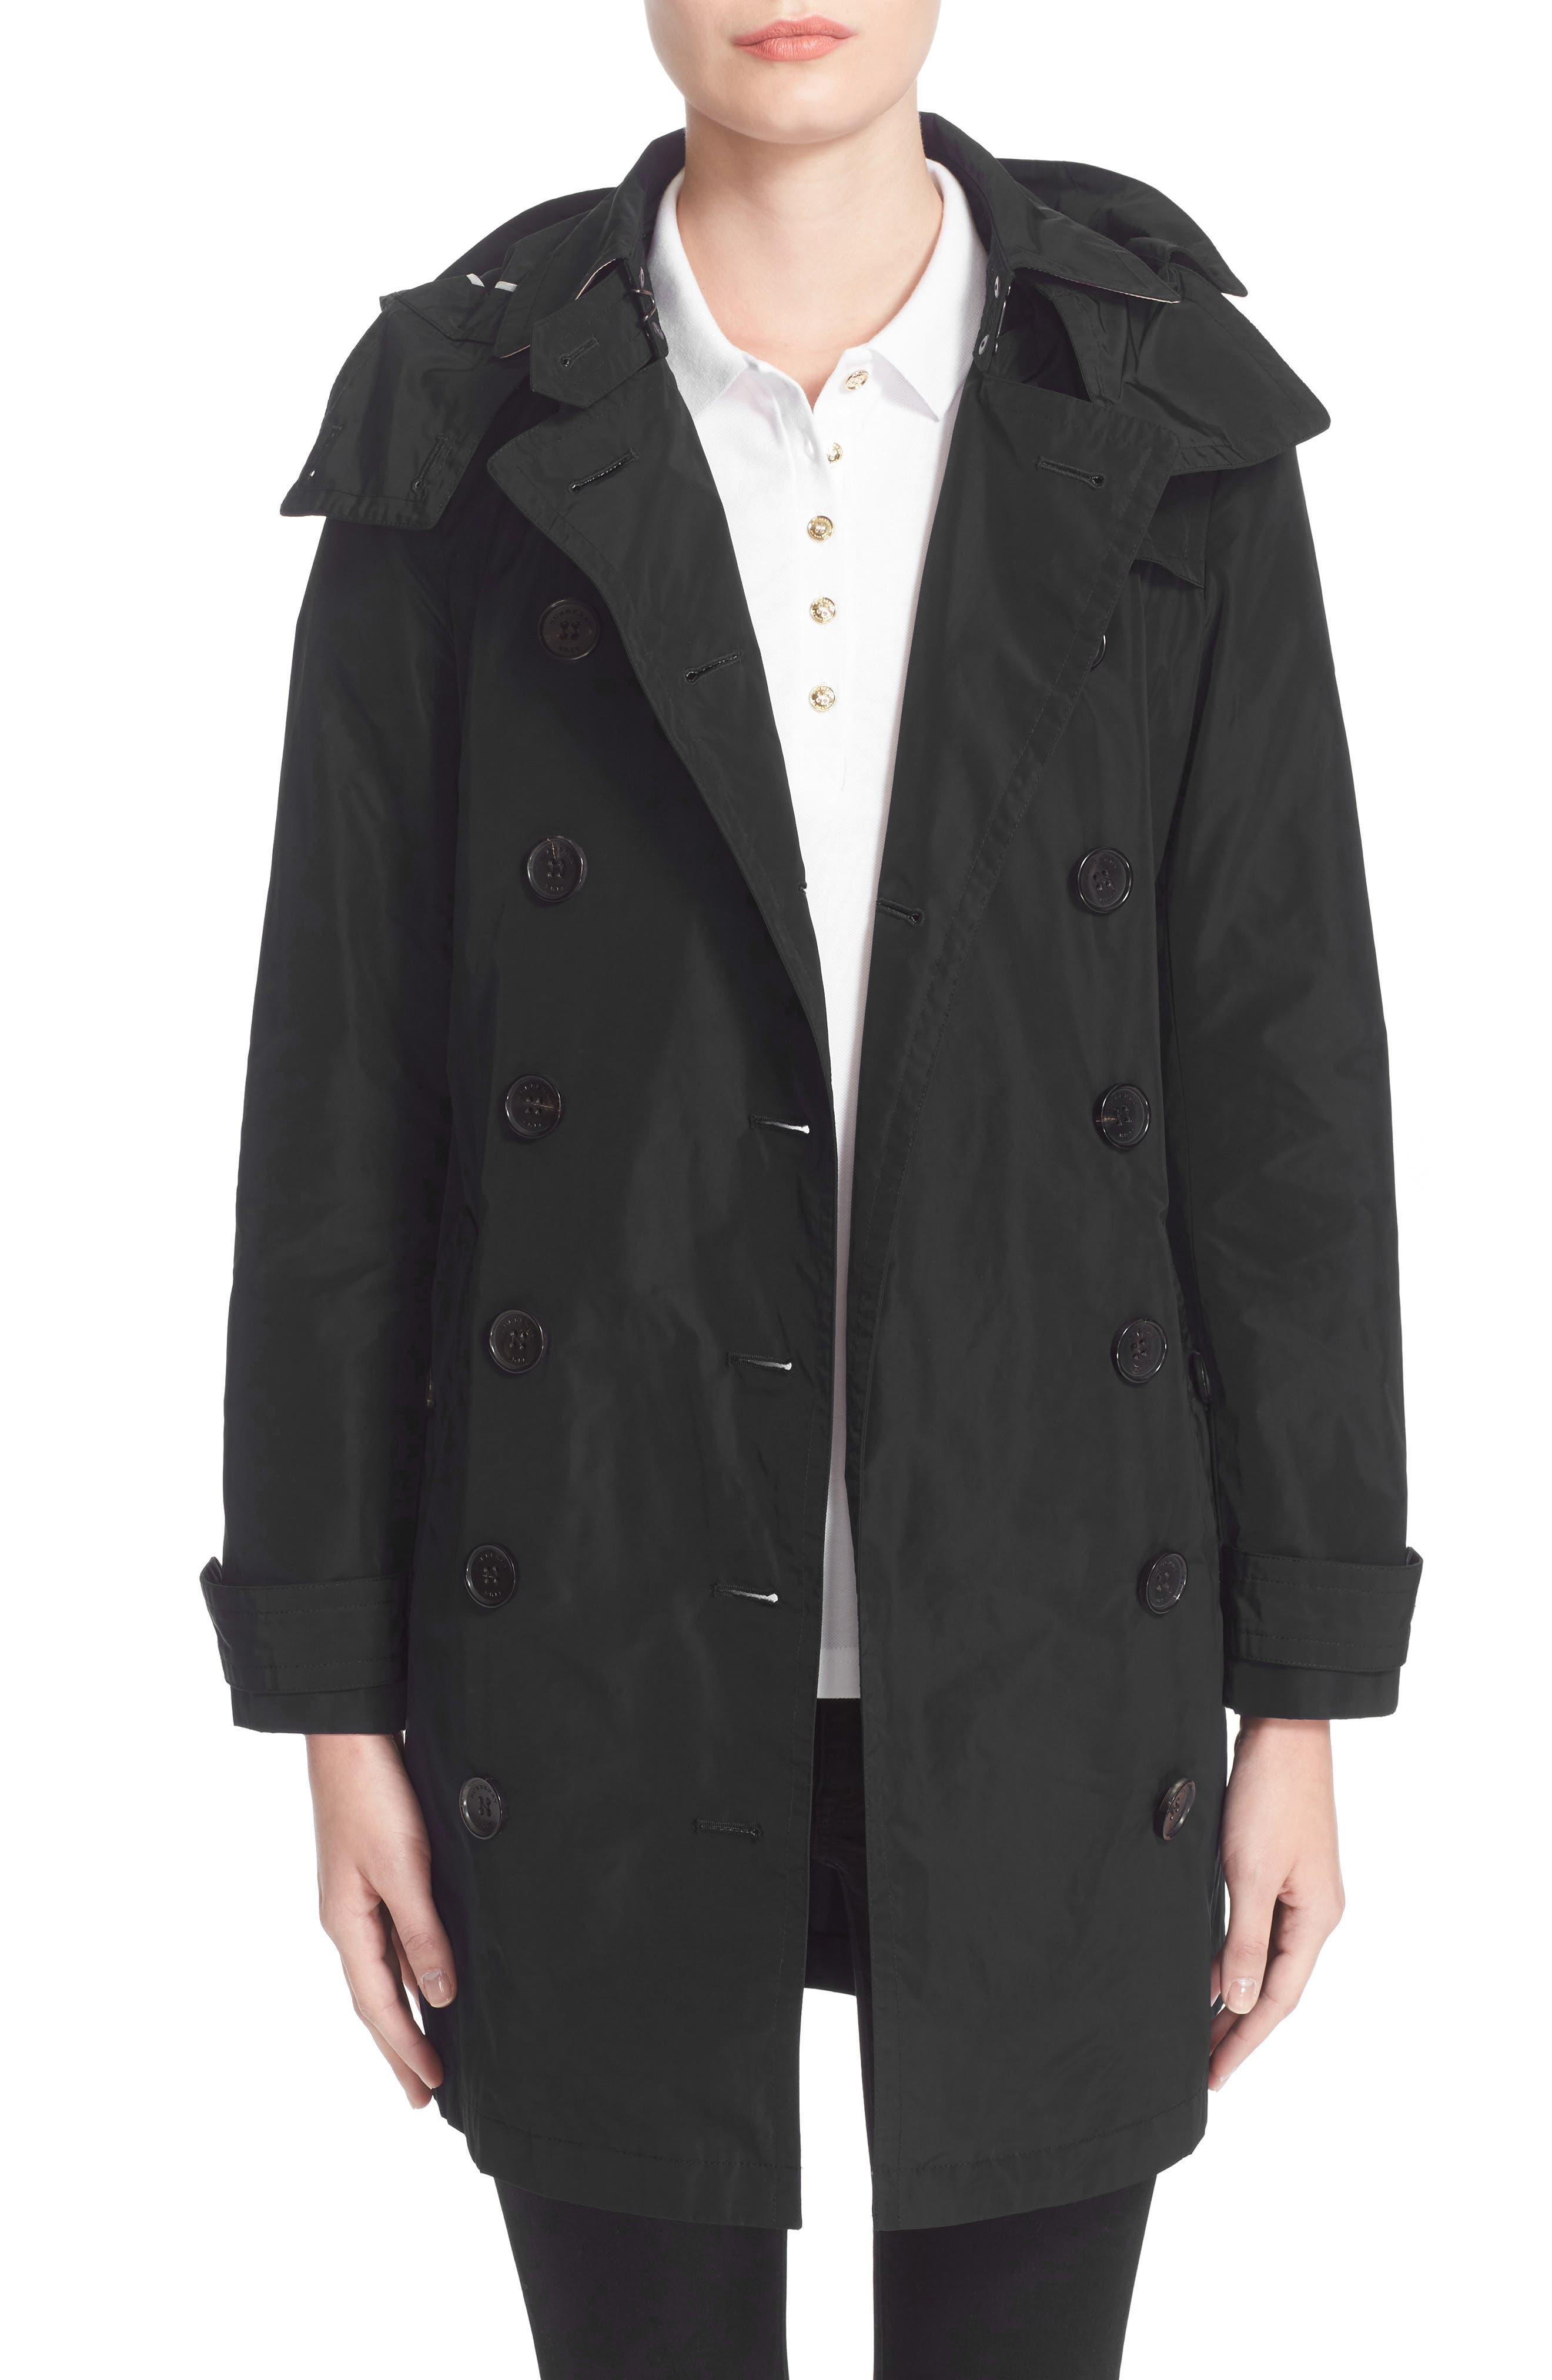 BURBERRY, Balmoral Packable Trench, Alternate thumbnail 2, color, 001